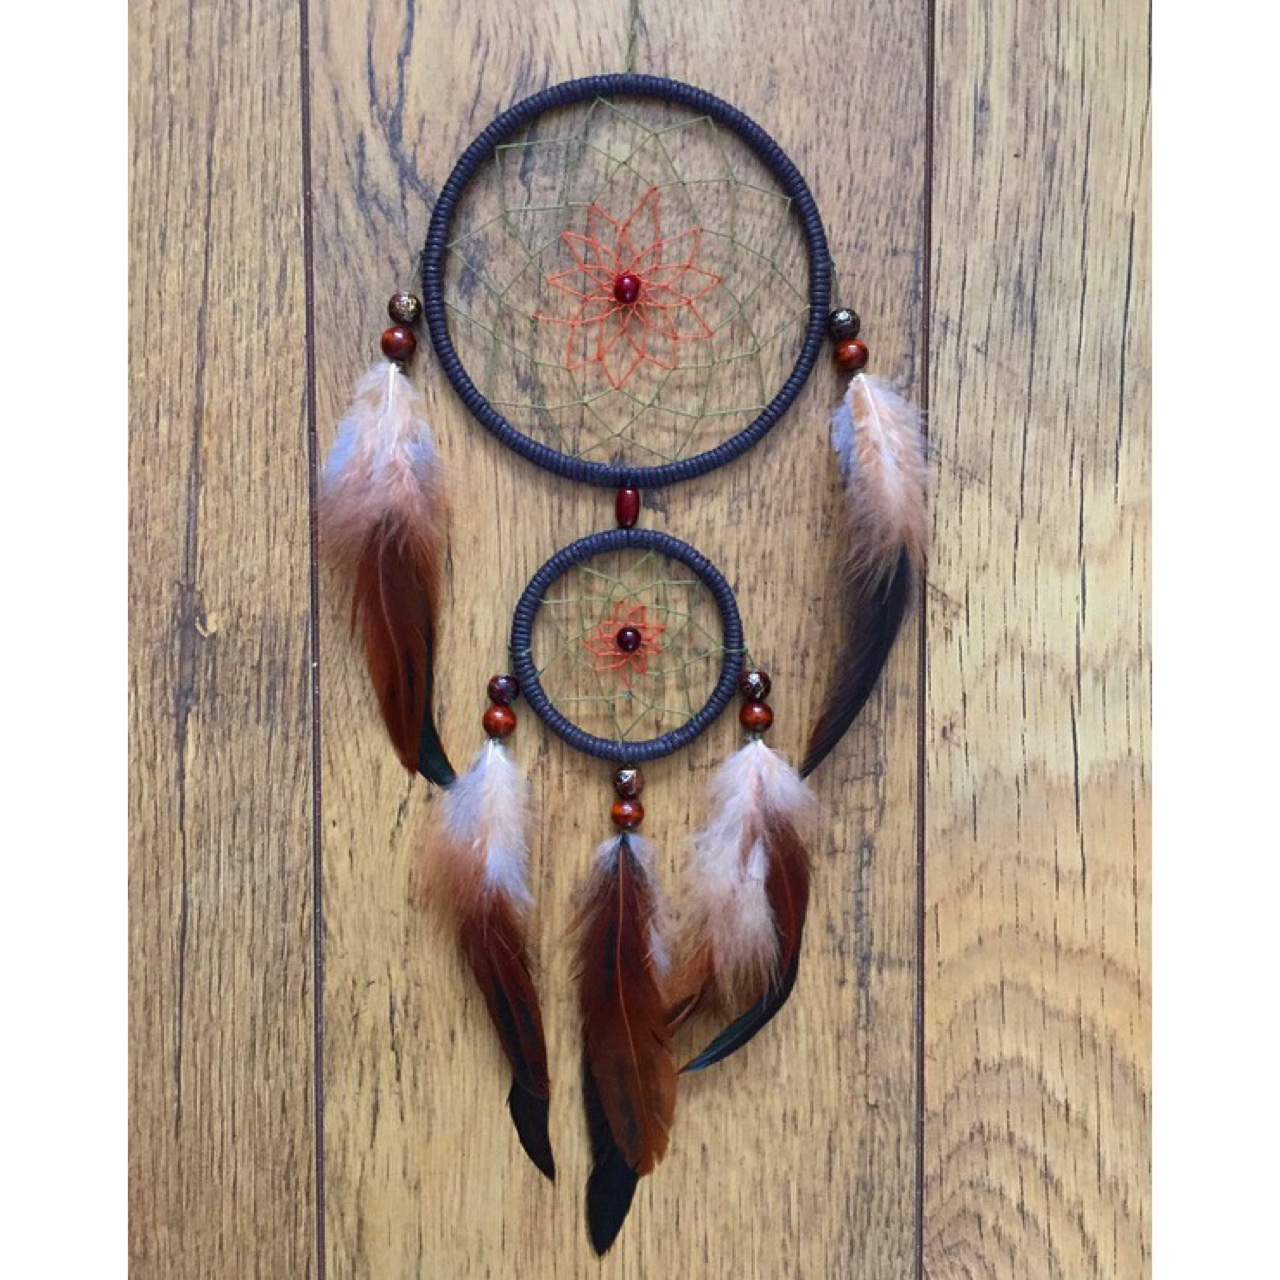 Where to purchase dream catchers